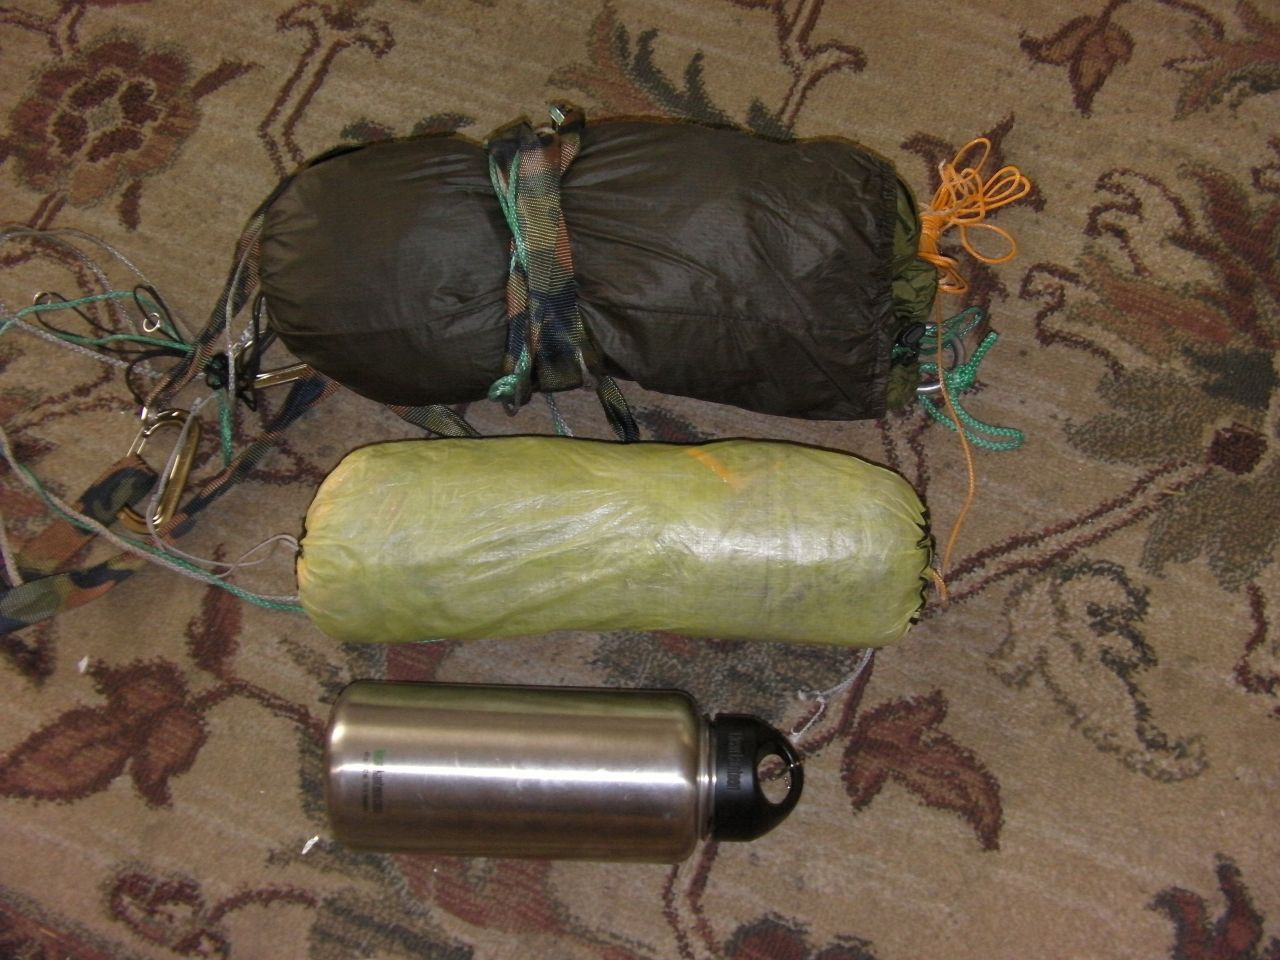 Hammock, Tarp, Watter Bottle Comparison